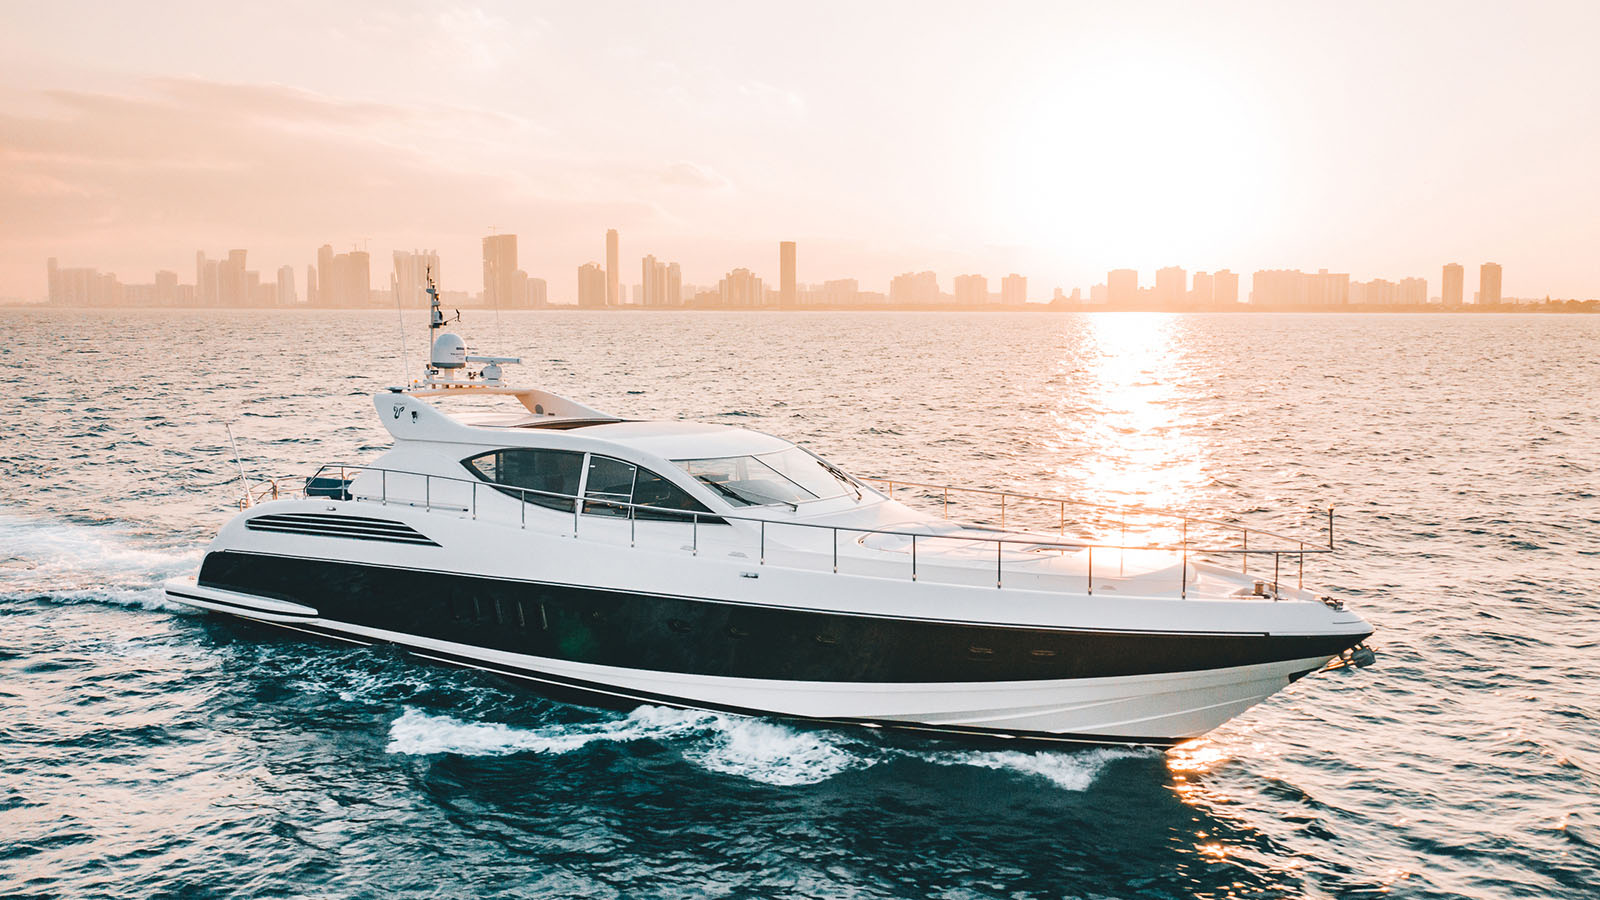 Dash Yacht for Sale - IYC